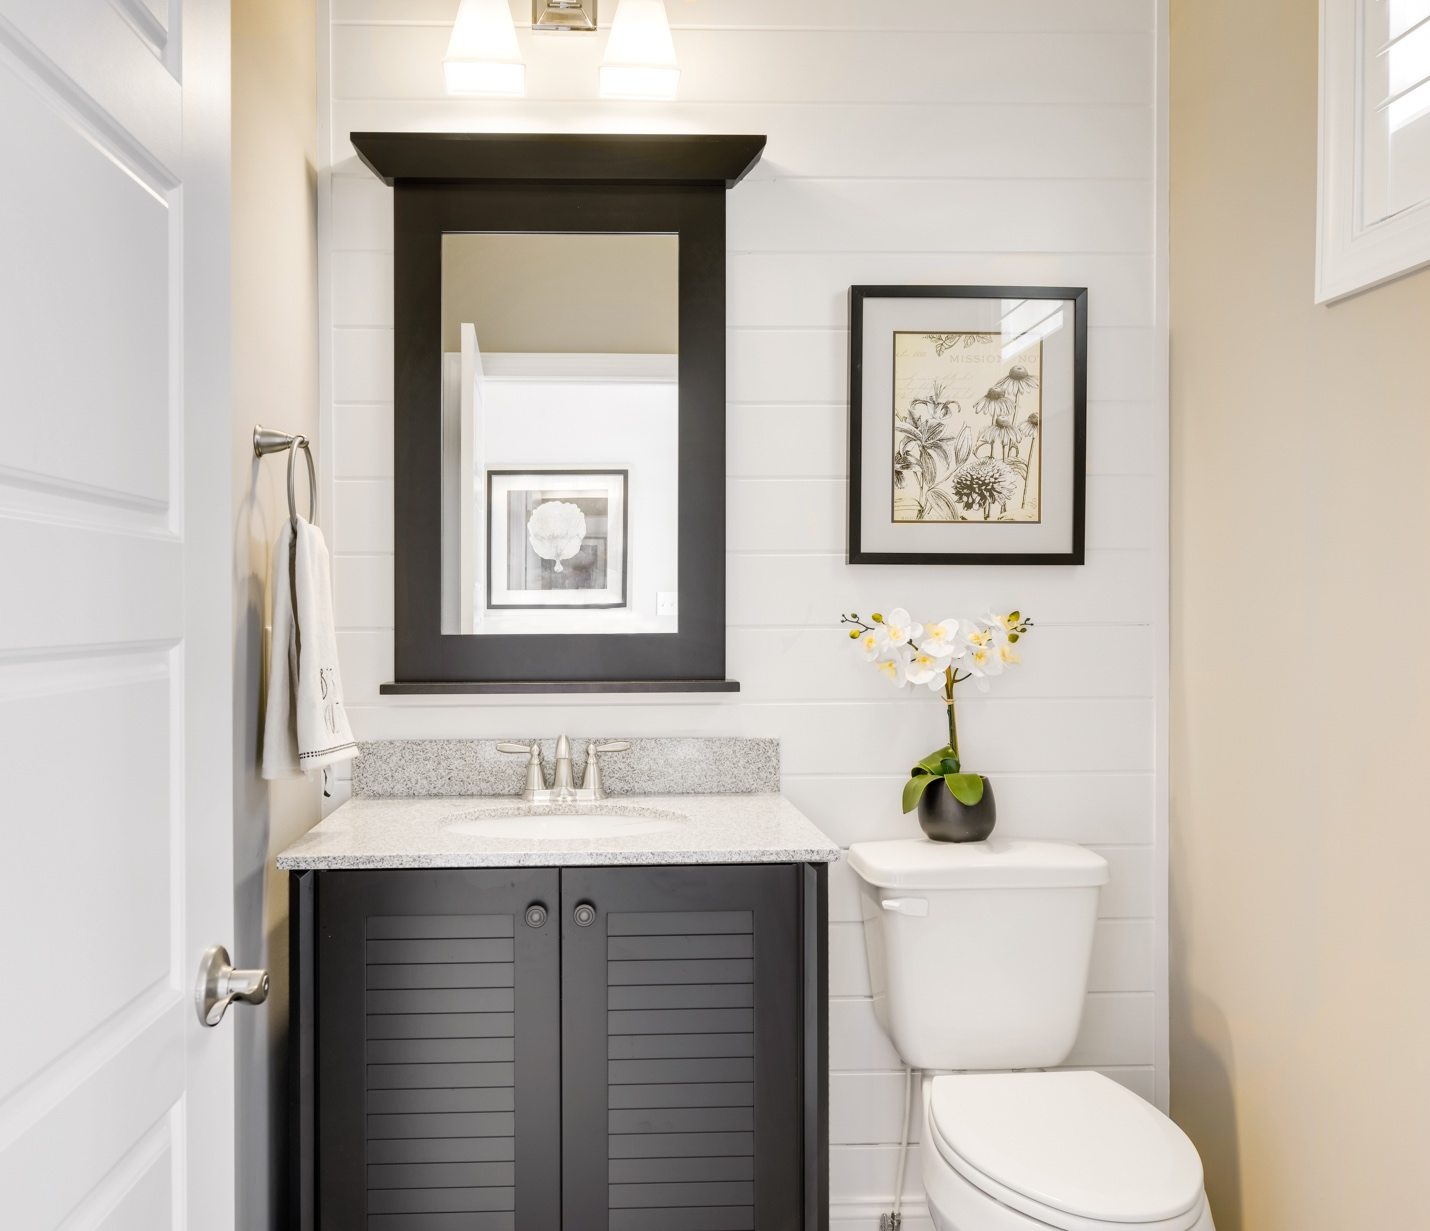 A picture containing wall, indoor, bathroom Description automatically generated